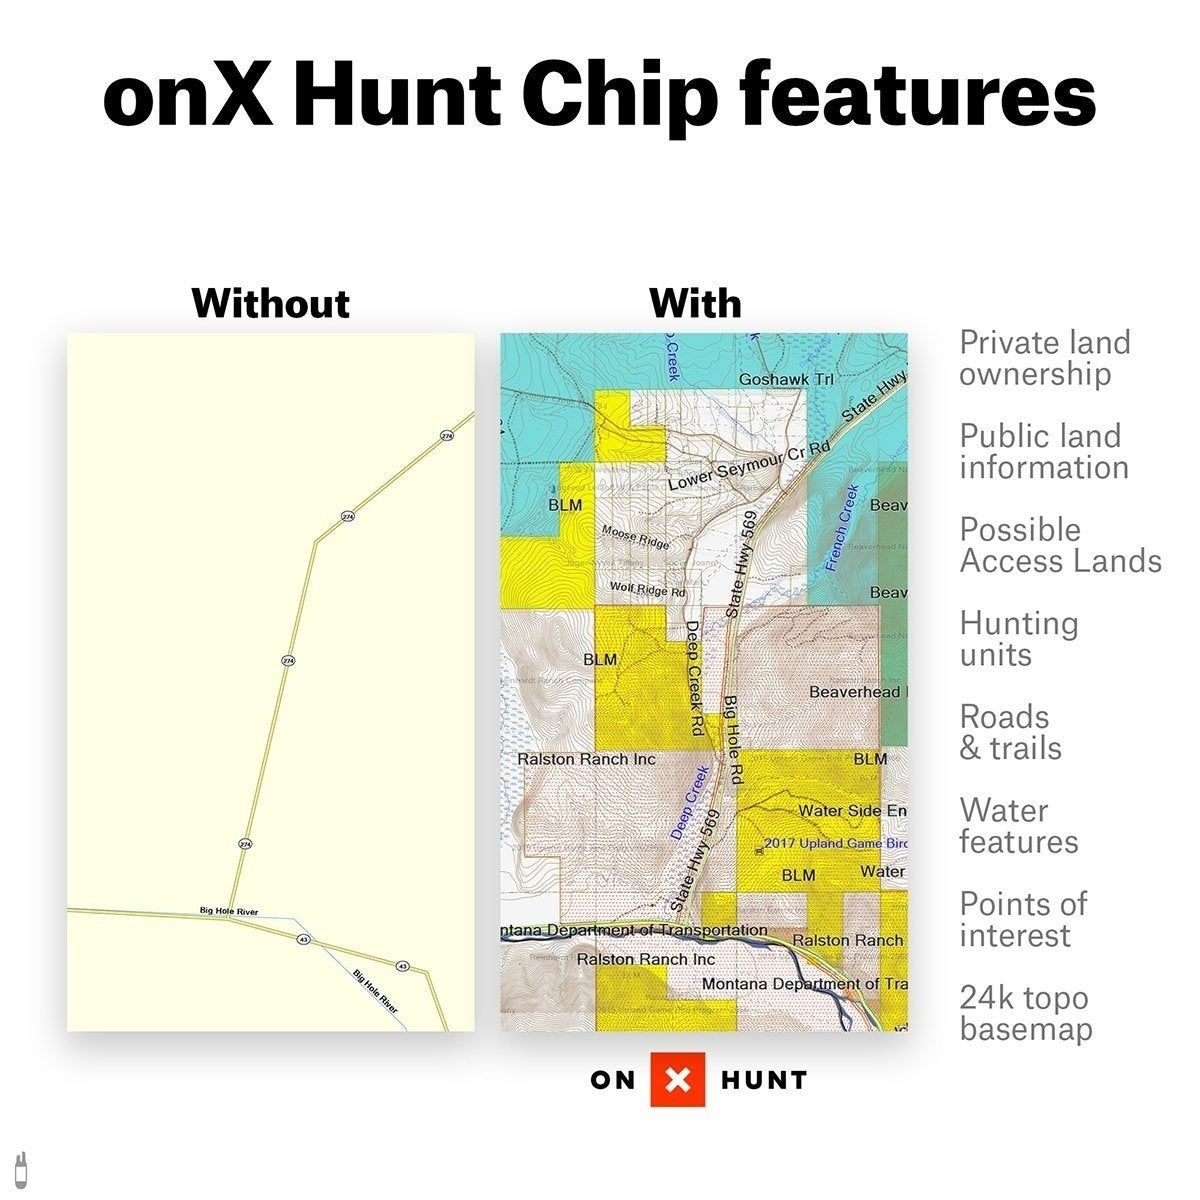 Blm Land Idaho Map.Shop Onx Hunt Idaho Public Private Land Ownership 24k Topo Maps For